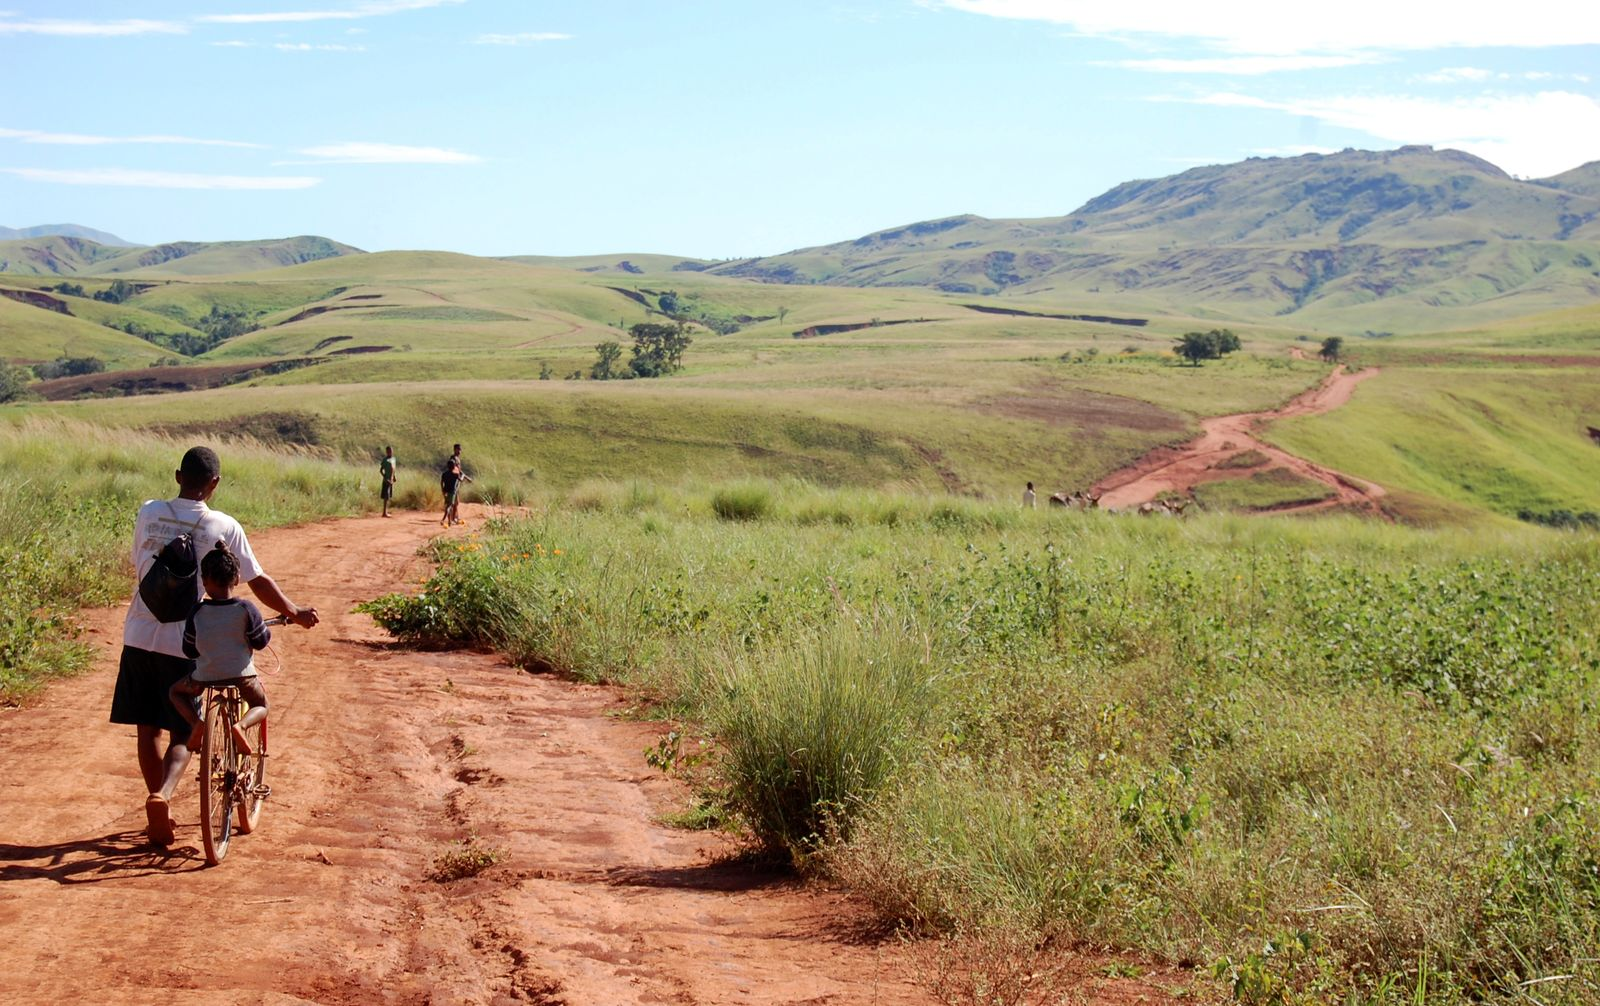 FILE PHOTO: A farmer carries his son on a bicycle as they cross a locust infested area in the Vakinankaratra region of central Madagascar